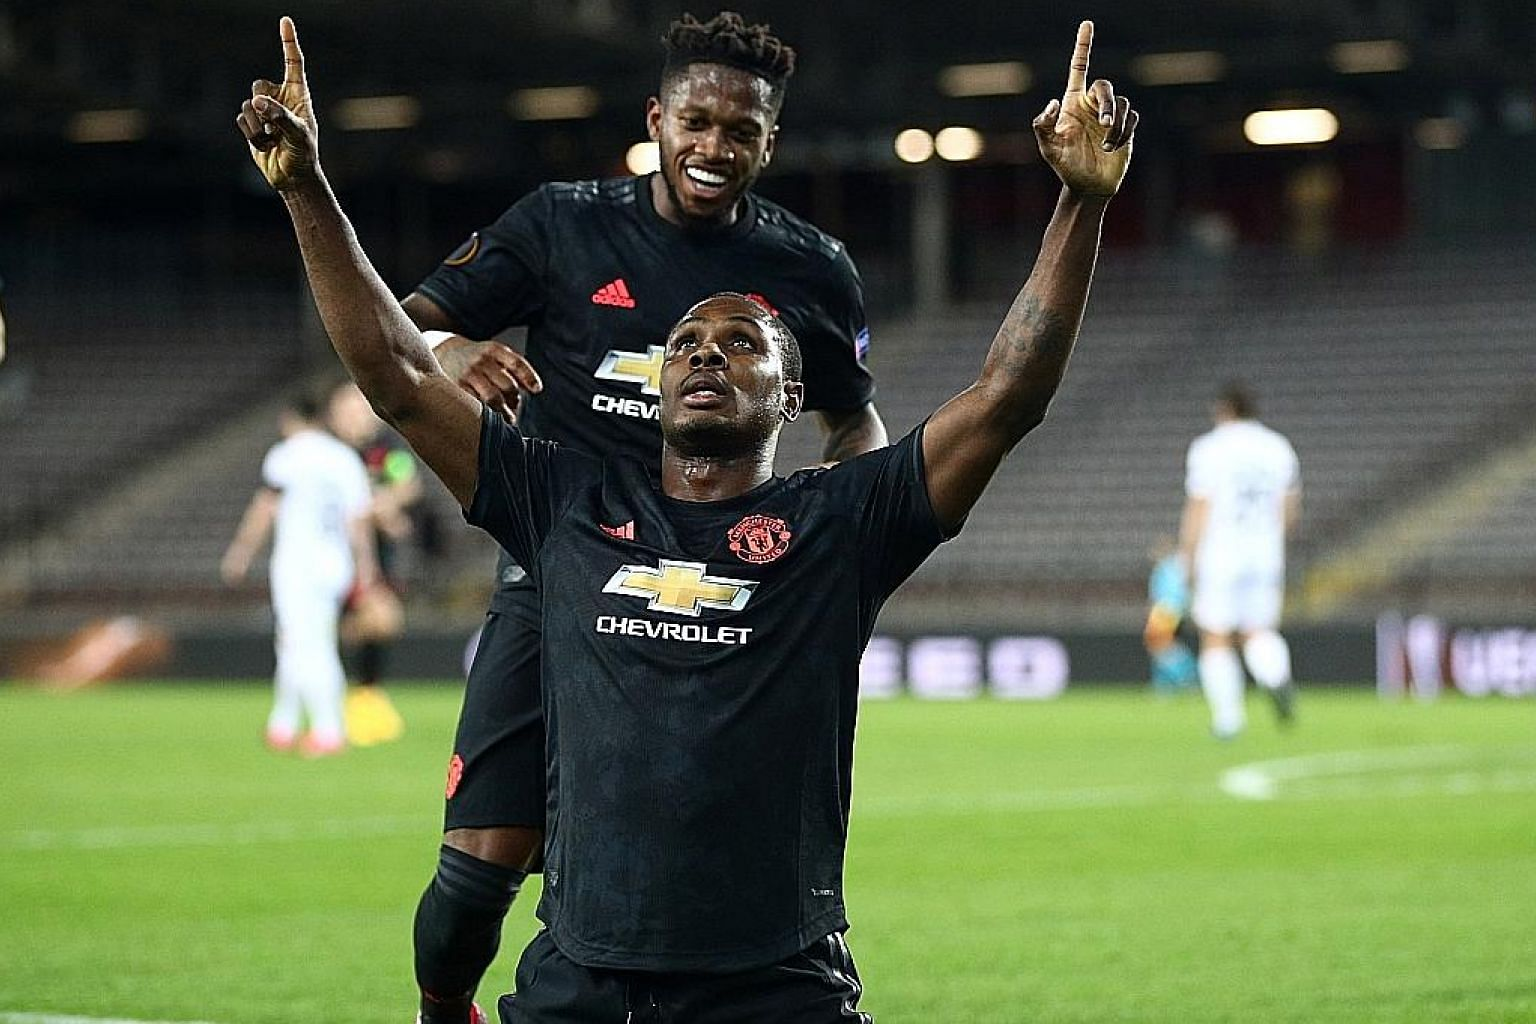 Brazilian Fred joins in the celebrations after Nigerian Odion Ighalo opens accounts for United in their 5-0 win in the first leg of their Europa League last-16 tie against Austria's Lask on March 12. It was United's last game before the coronavirus c